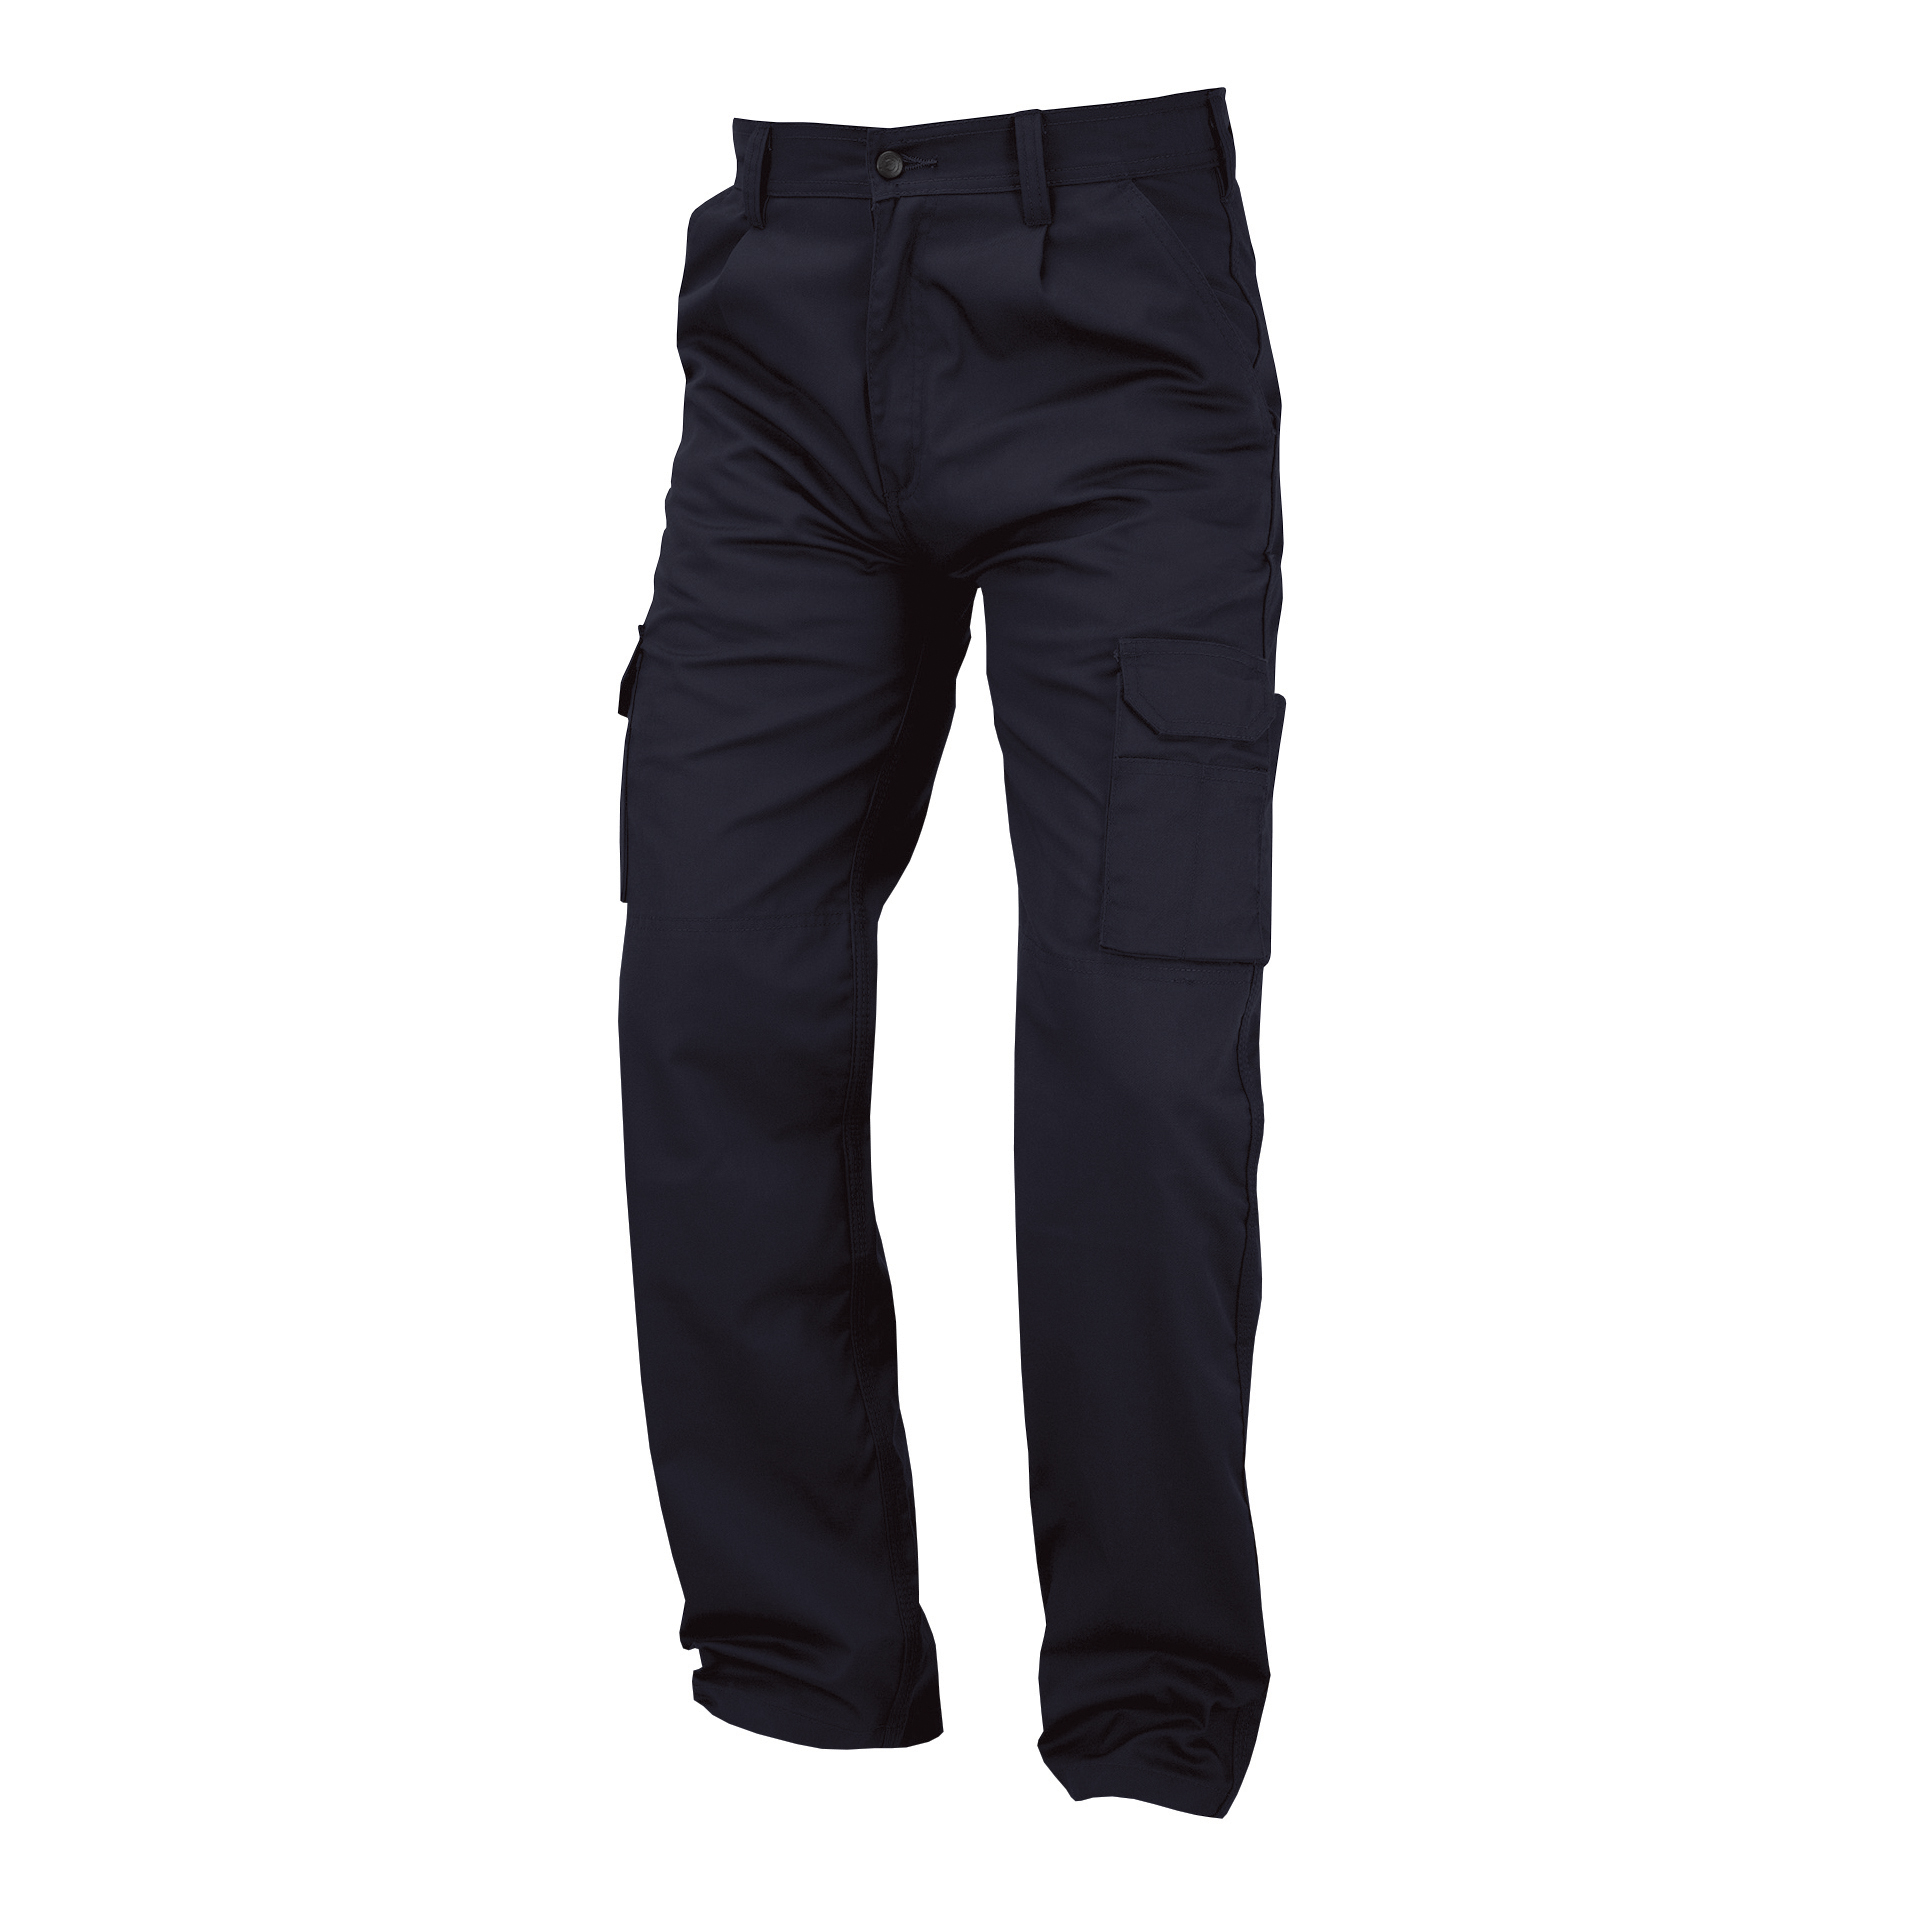 Business Kneepad Combat Trouser Multi-functional Waist 44in Leg 29in Navy